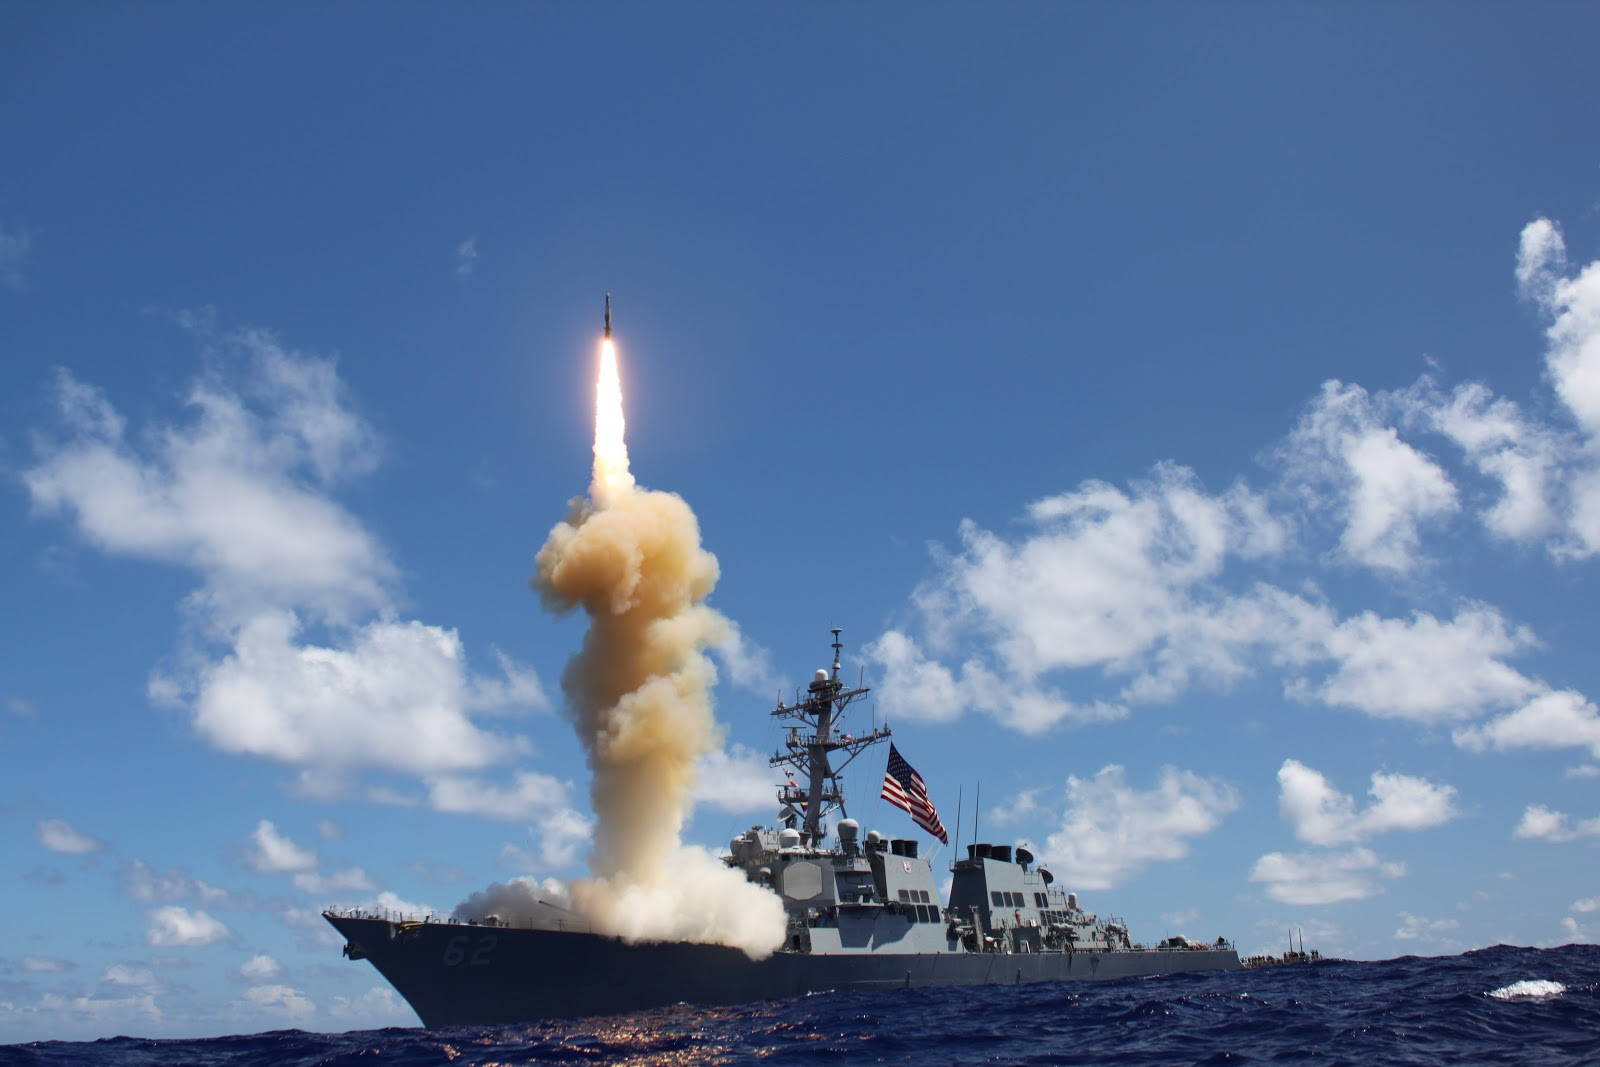 Standard Missile-3 (SM-3) launches from the guided-missile destroyer USS Fitzgerald (DDG 62) as apart of a joint ballistic missile defense exercise. The new ABM capable DDGs carrying the SM-3 will provide a limited missile umbrella over Europe and North Africa